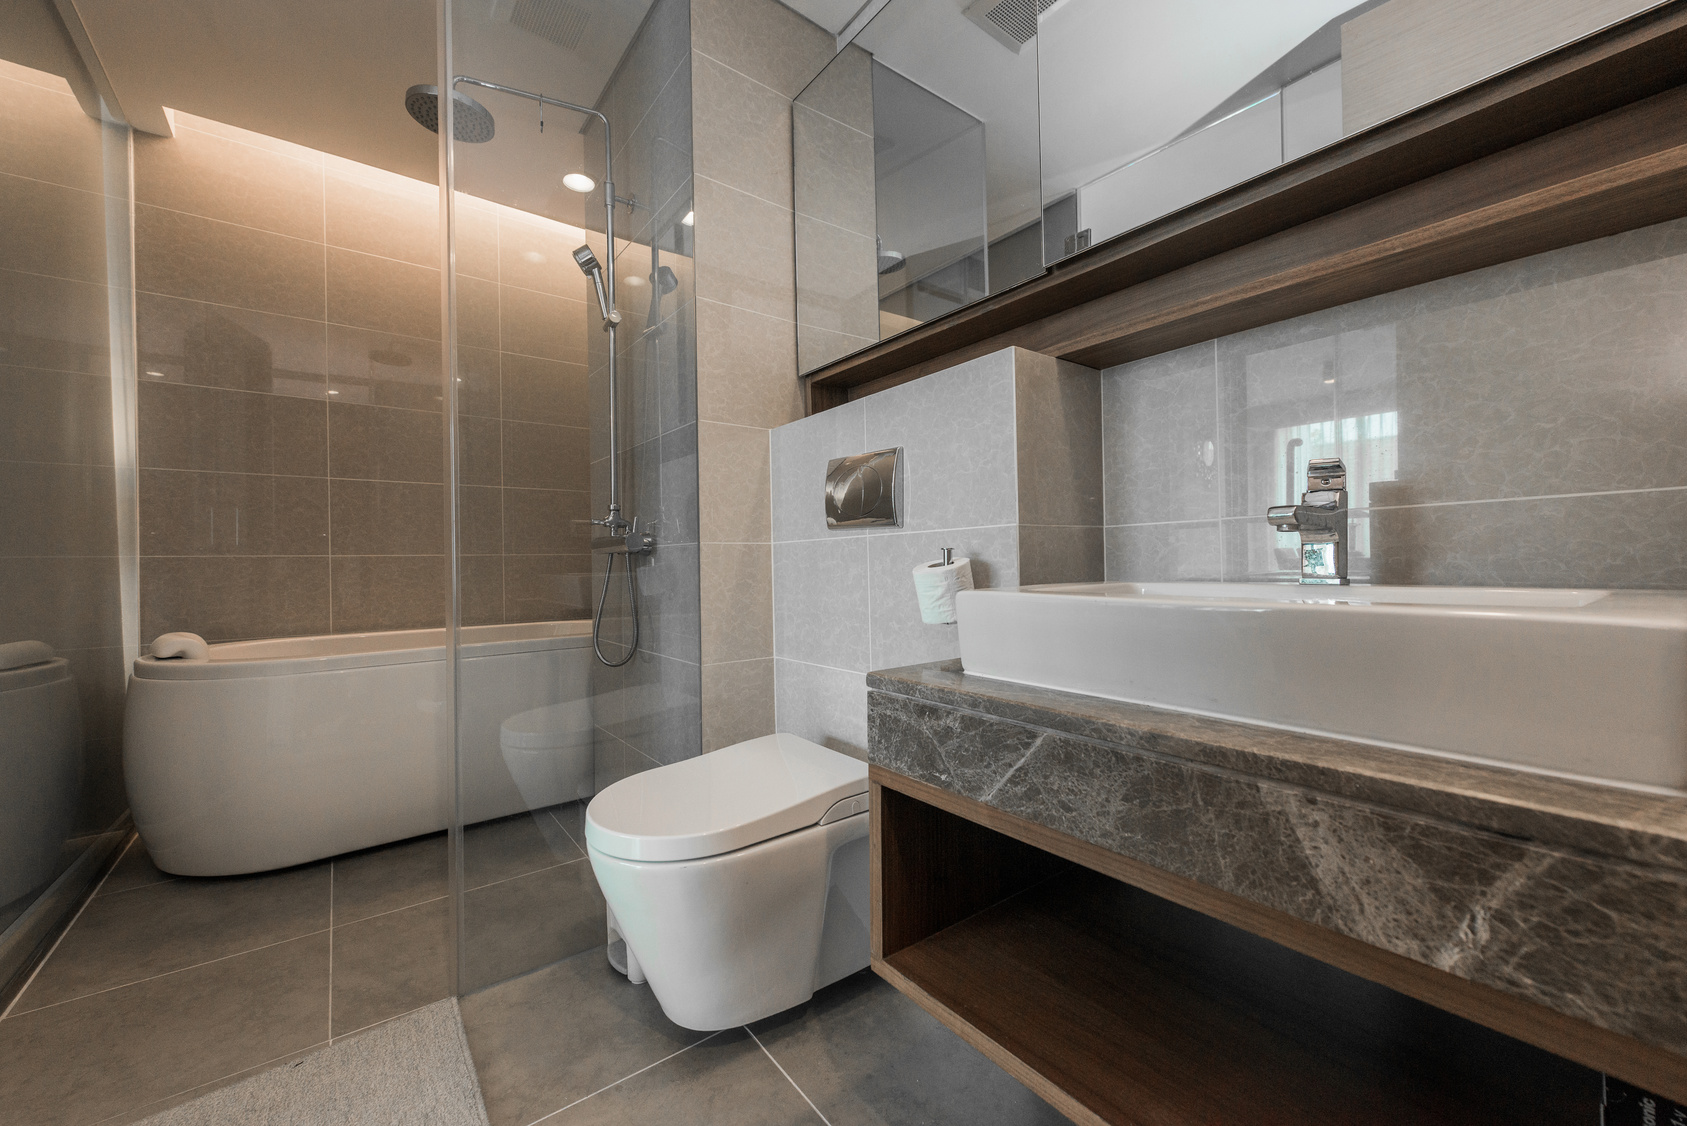 How To Pull Off An Epic Bathroom Remodel On A Budget